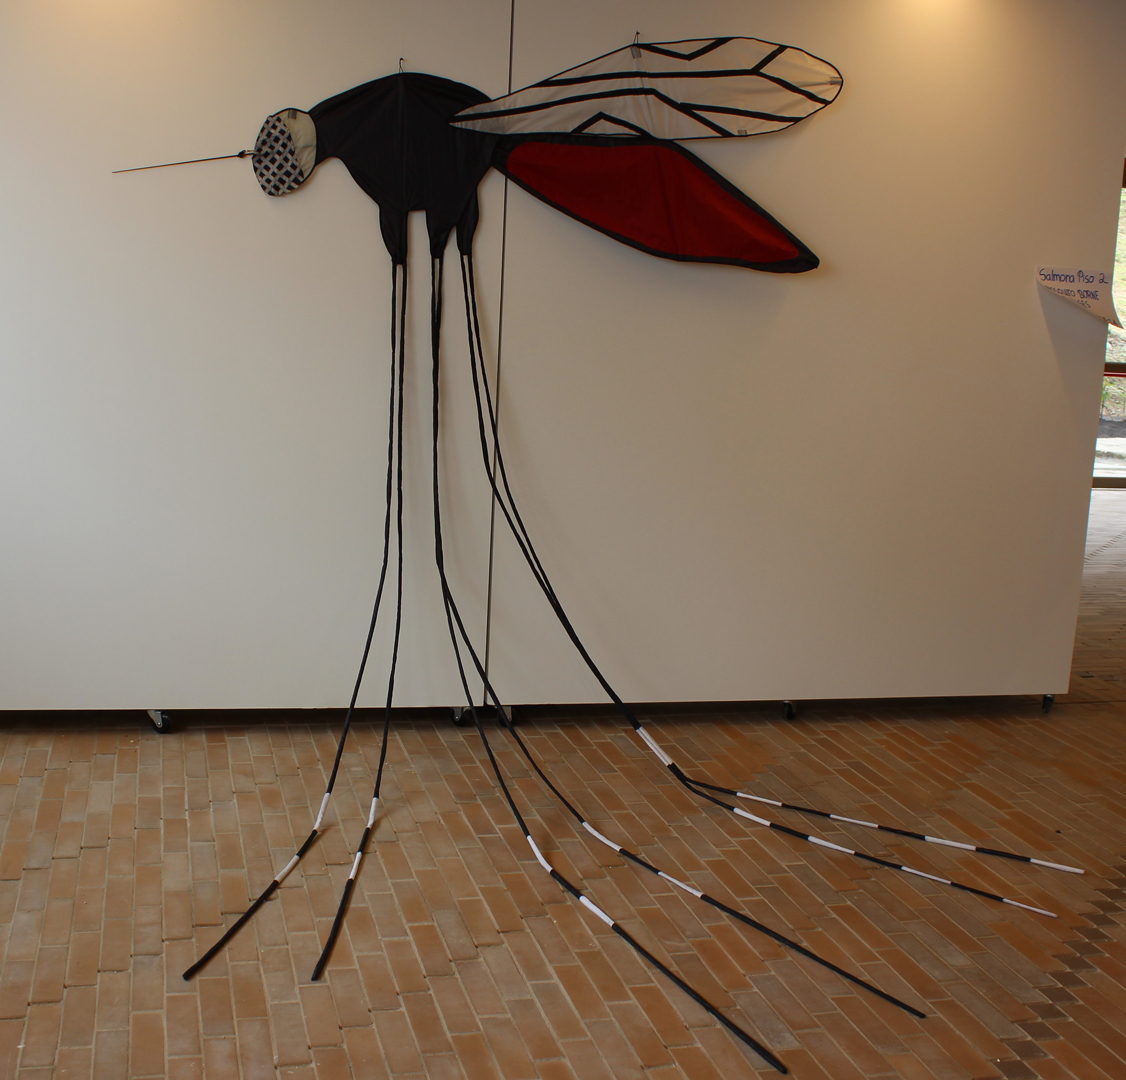 ©, Alejandro Valencia Tobón, Experiments at the interface between art, anthropology and science to re-design health campaigns against mosquito-borne diseases